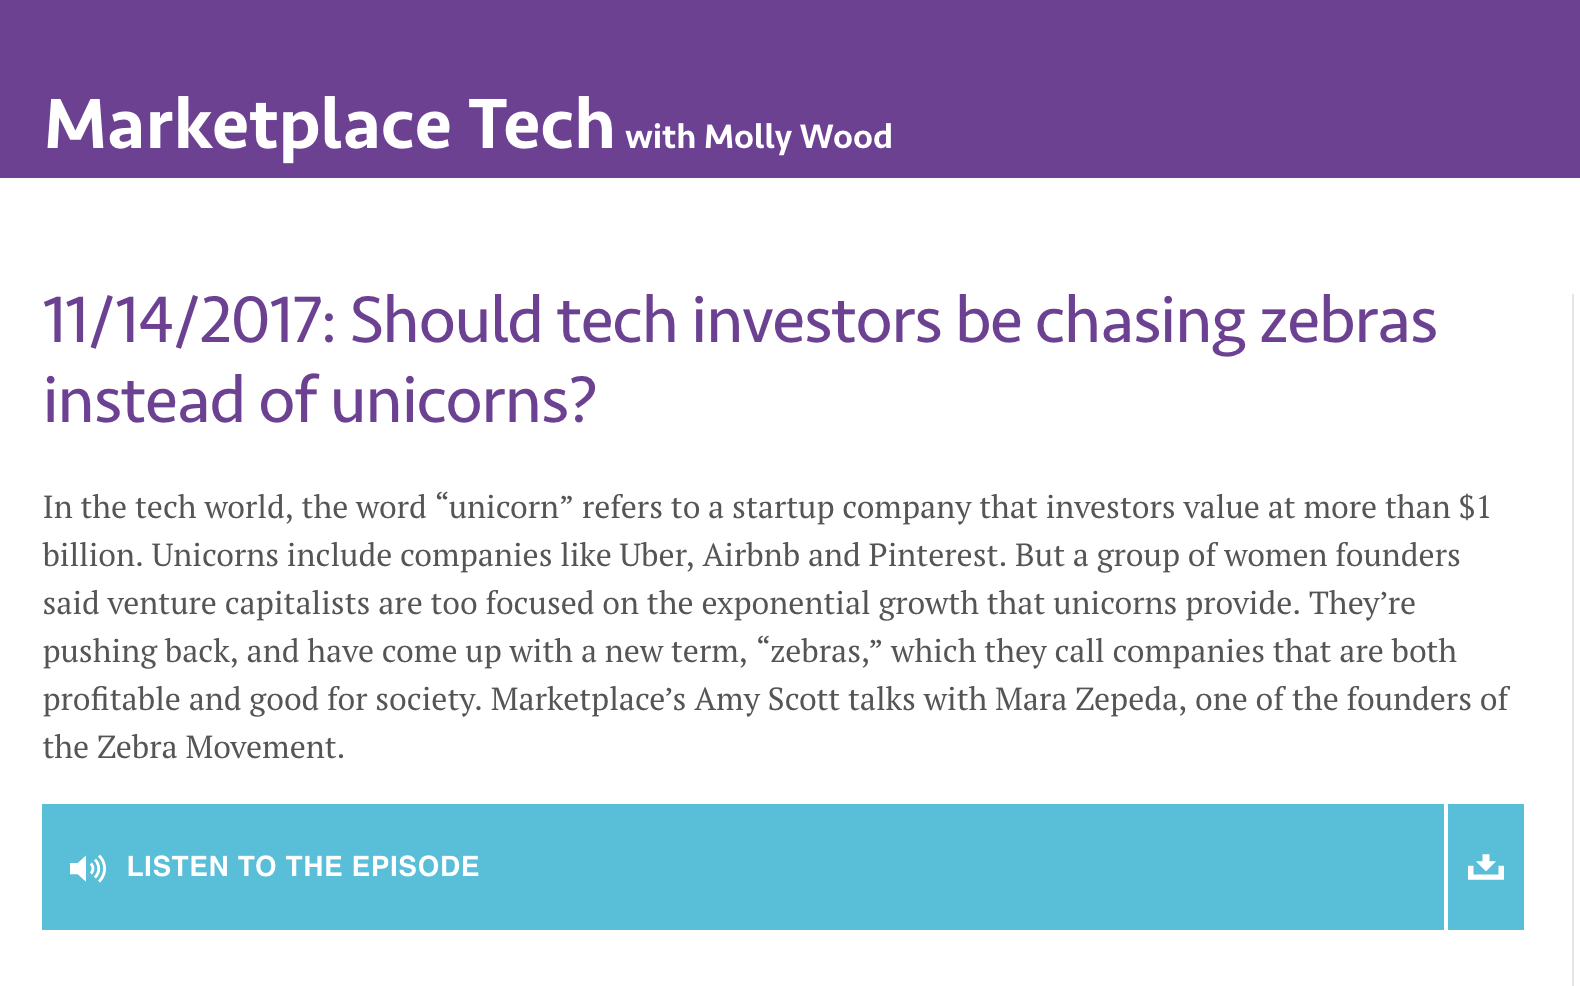 """Marketplace: """" Should tech investors be chasing zebras instead of unicorns?, """" 11/14/17"""